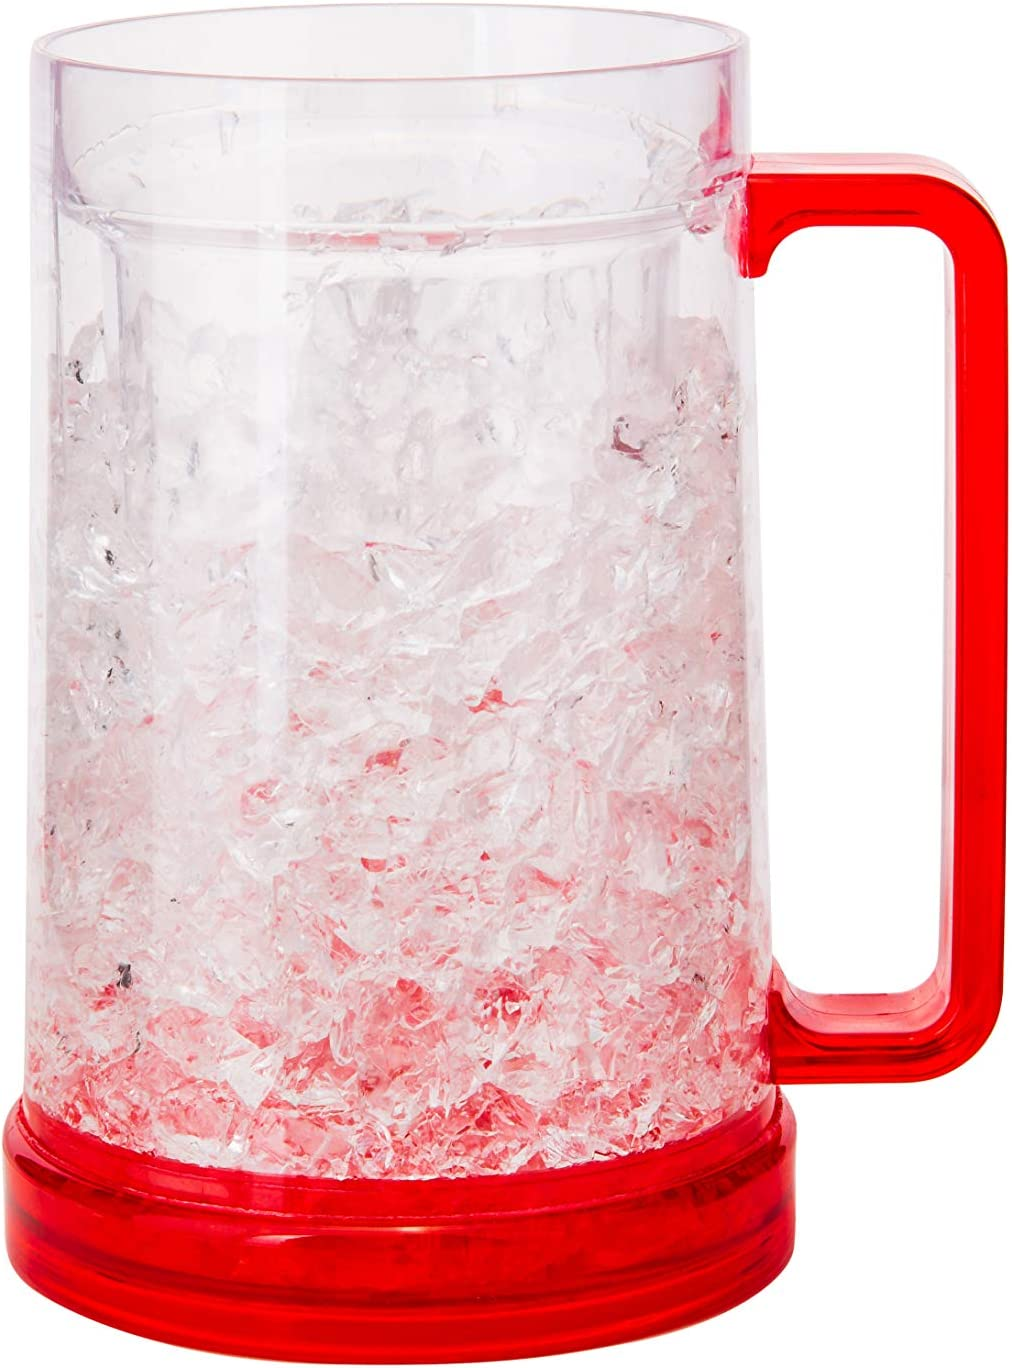 Freezer Surprise price Mug 16oz - Gel with Easy-to-use for Beer